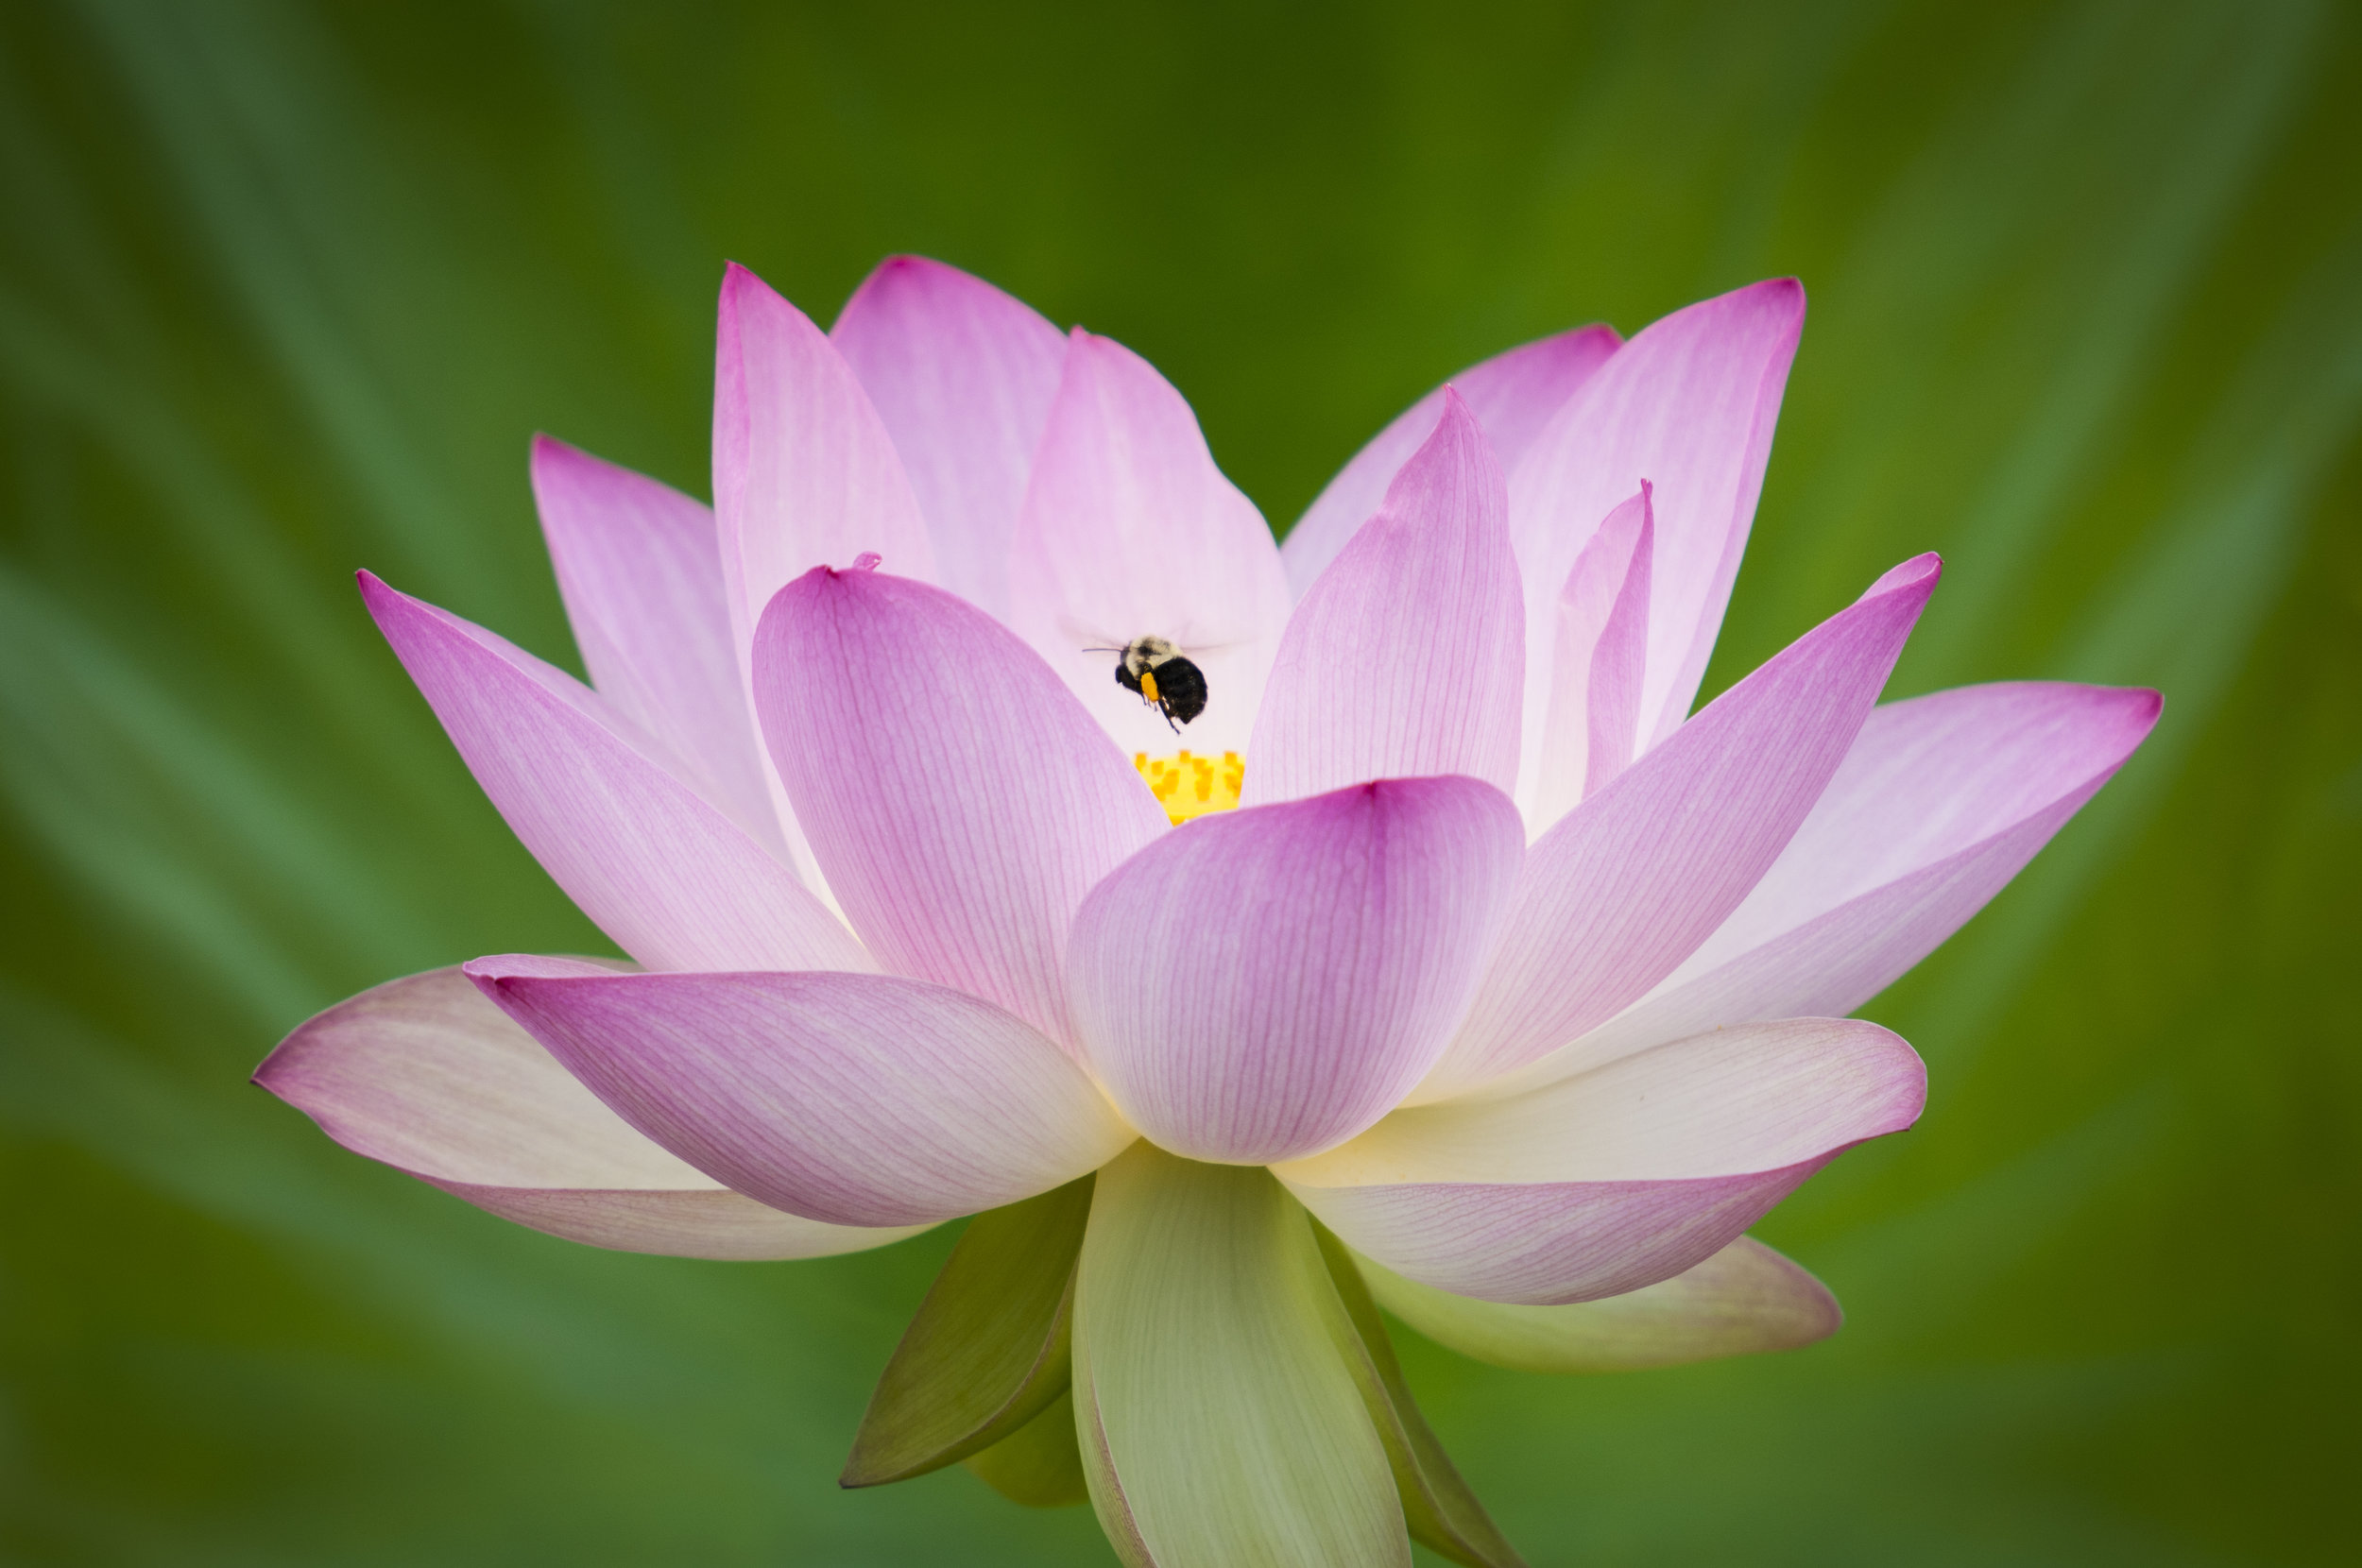 Lotus Flower and Bumble Bee against green background